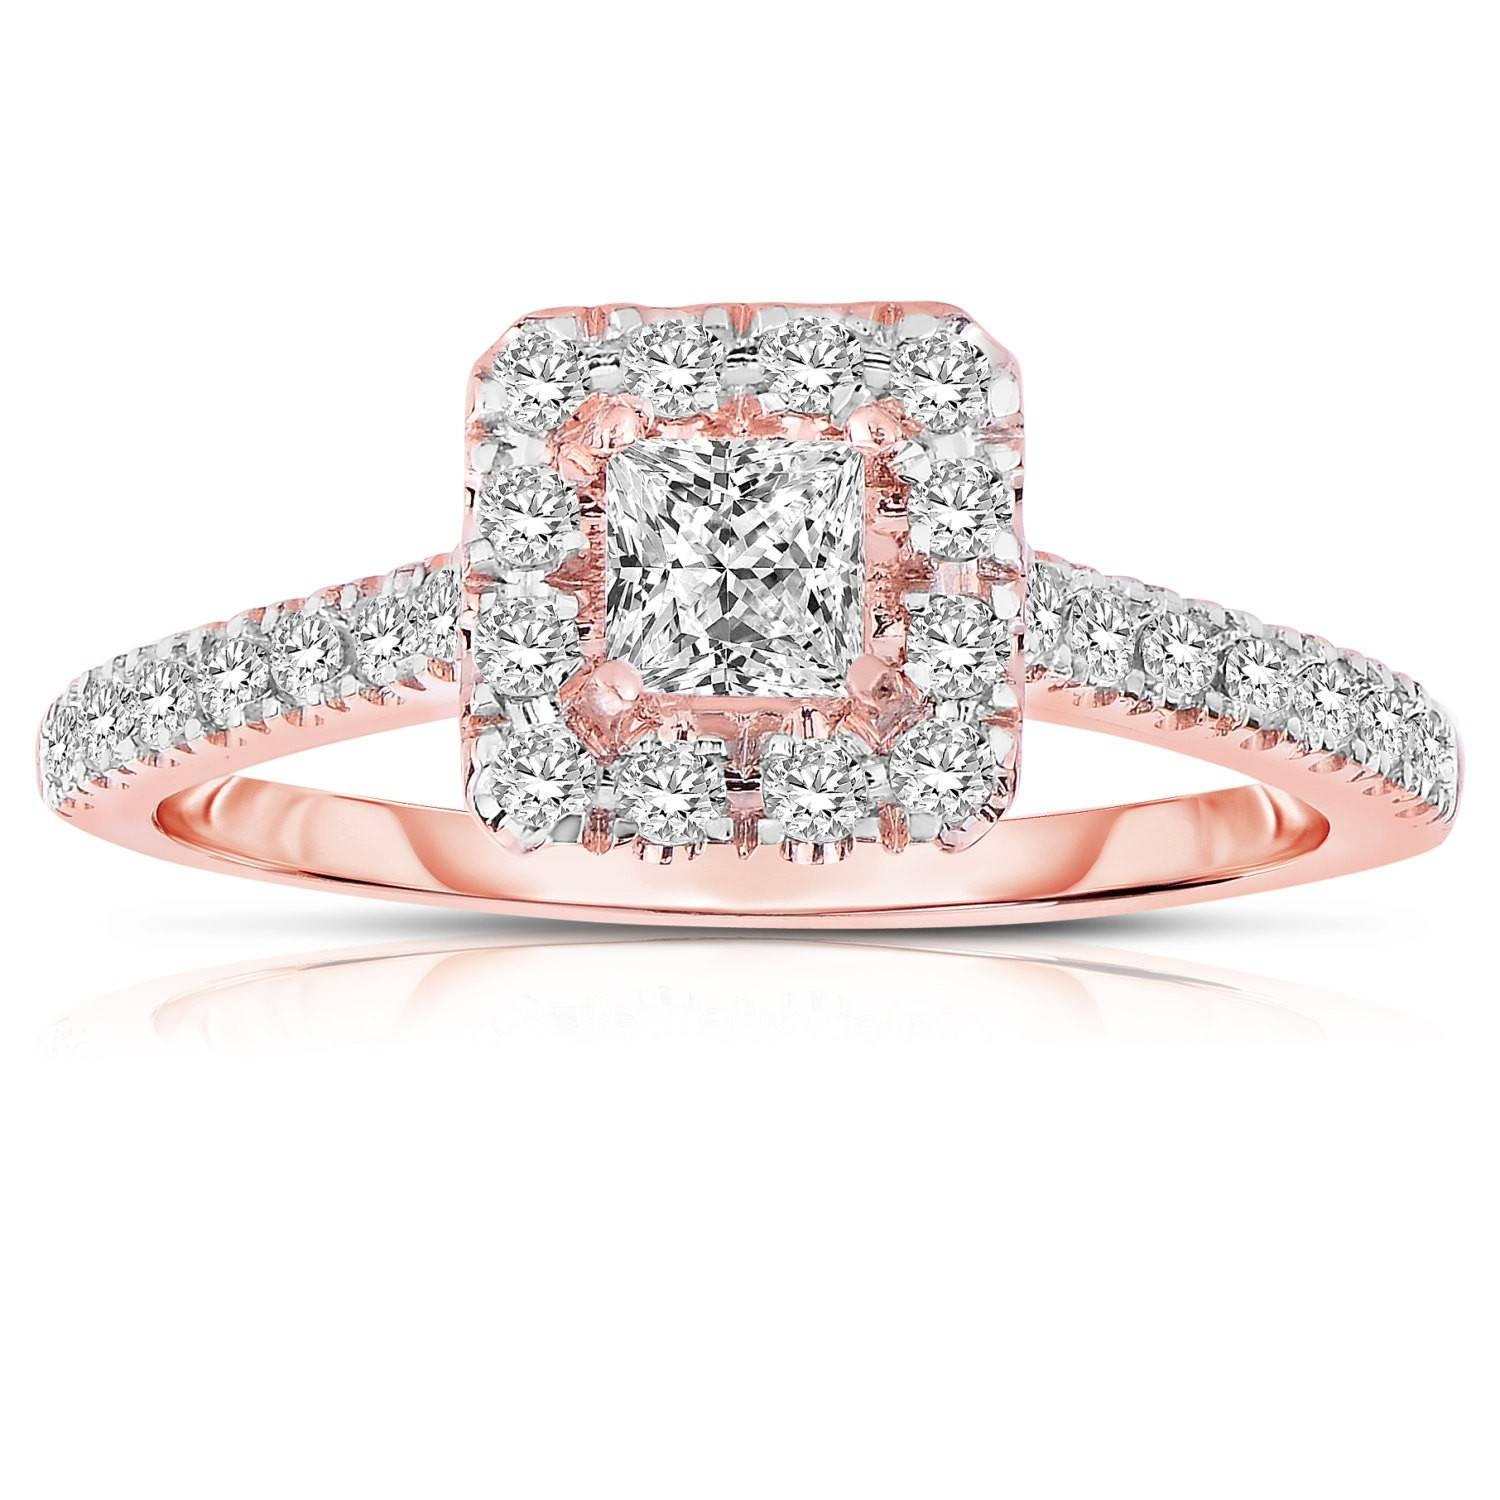 Engagement Rings Under 500 | Diamond Engagement Rings Under $500 Intended For Diamond Engagement Rings Under 300 (Gallery 1 of 15)